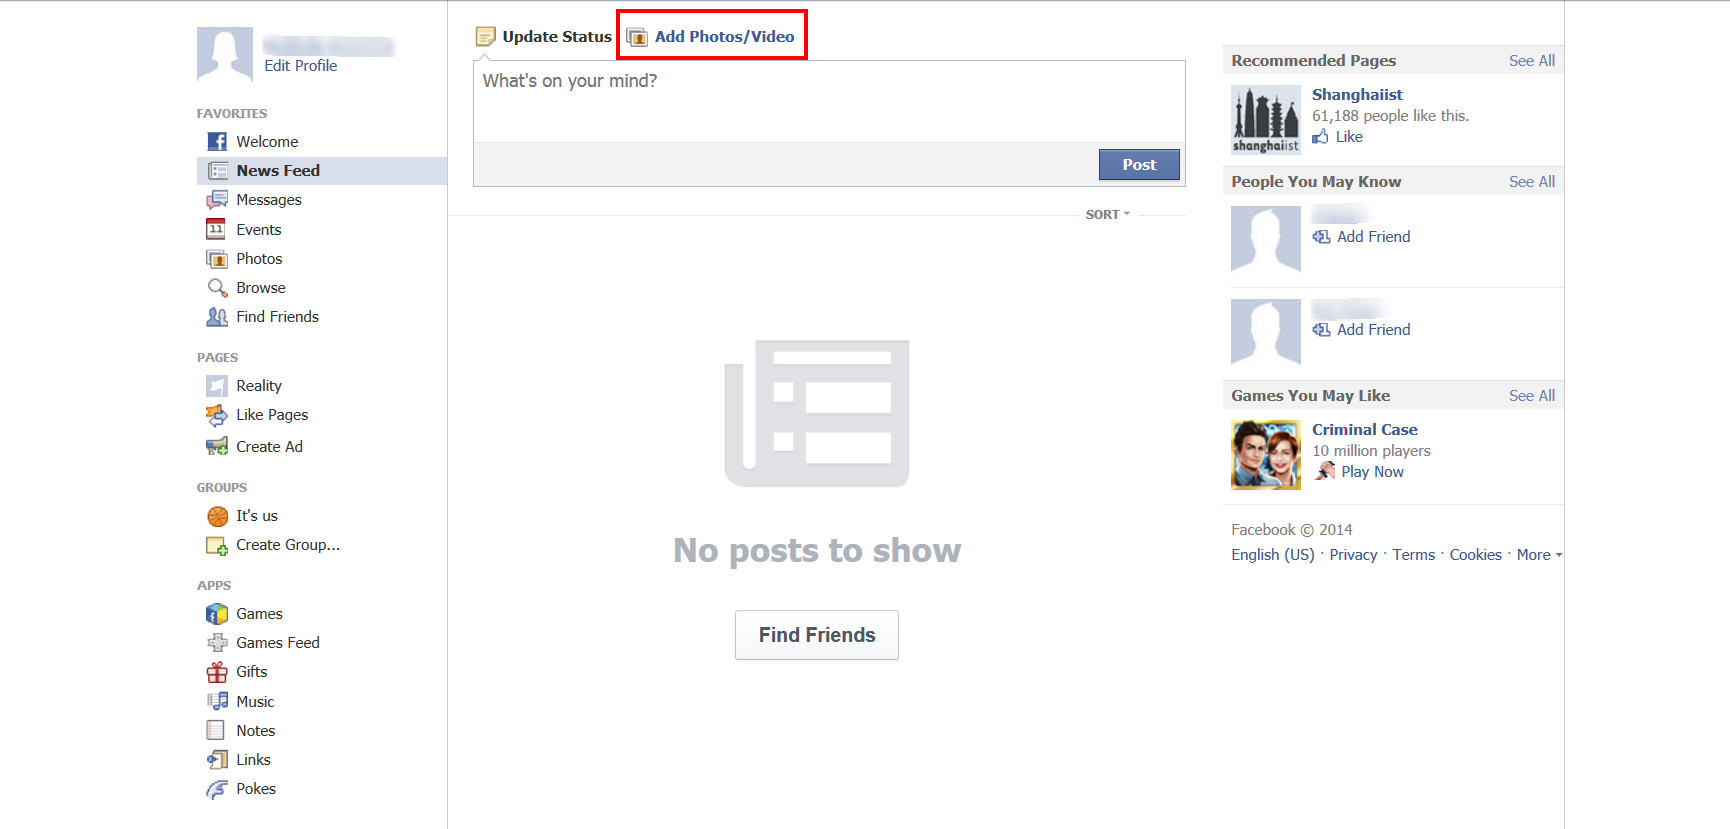 How to Share Photos and videos on Facebook add photos